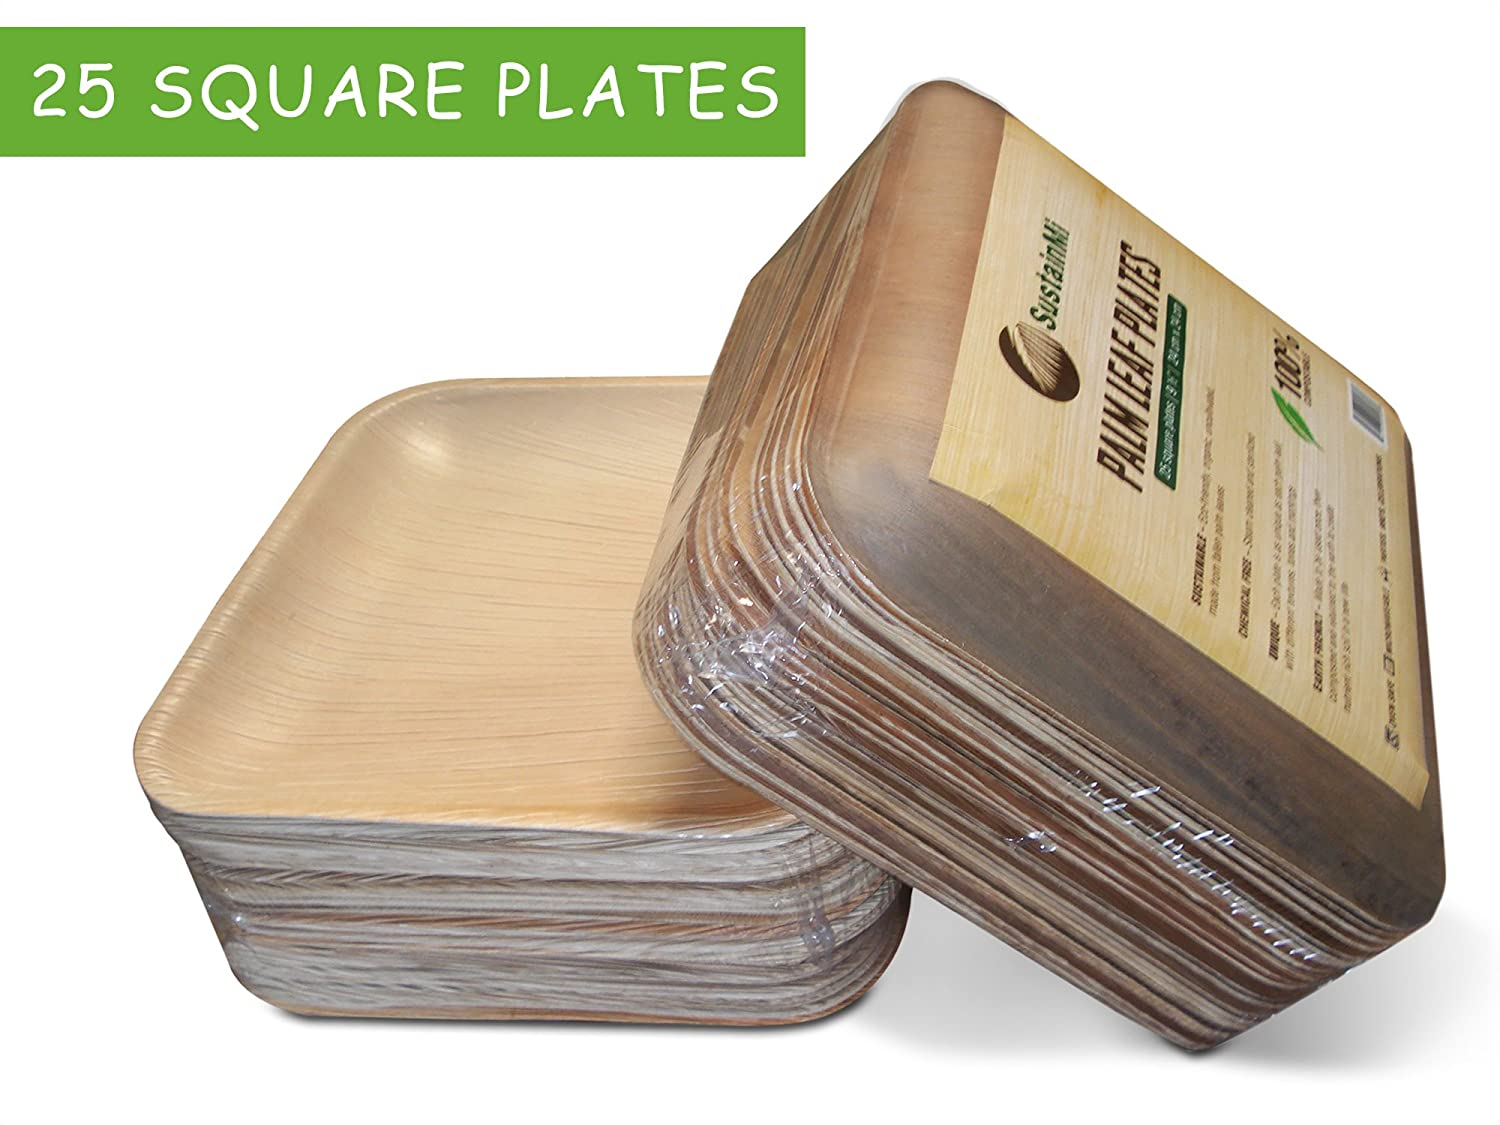 Amazon.com Disposable Eco-Friendly Palm Leaf Dinner Party Plates by SustainMi | Compostable Biodegradeable | 25 Pack 10 Inch | Heavy Duty and 100% Natural ...  sc 1 st  Amazon.com & Amazon.com: Disposable Eco-Friendly Palm Leaf Dinner Party Plates by ...